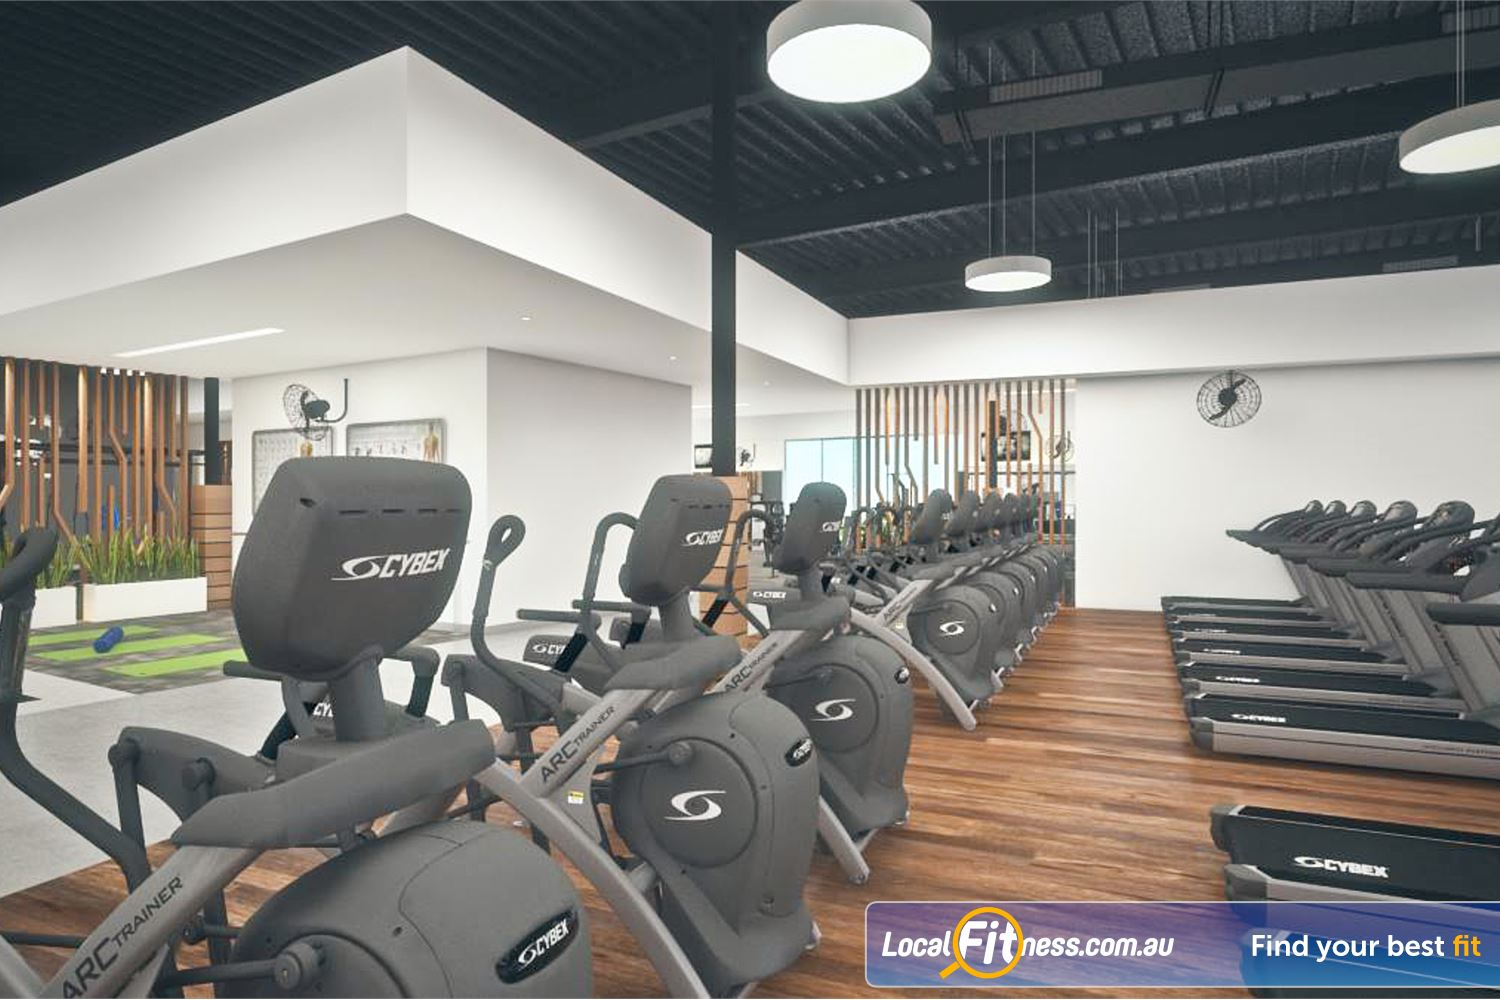 Goodlife Health Clubs Success Enjoy cardio 24 hours per day.